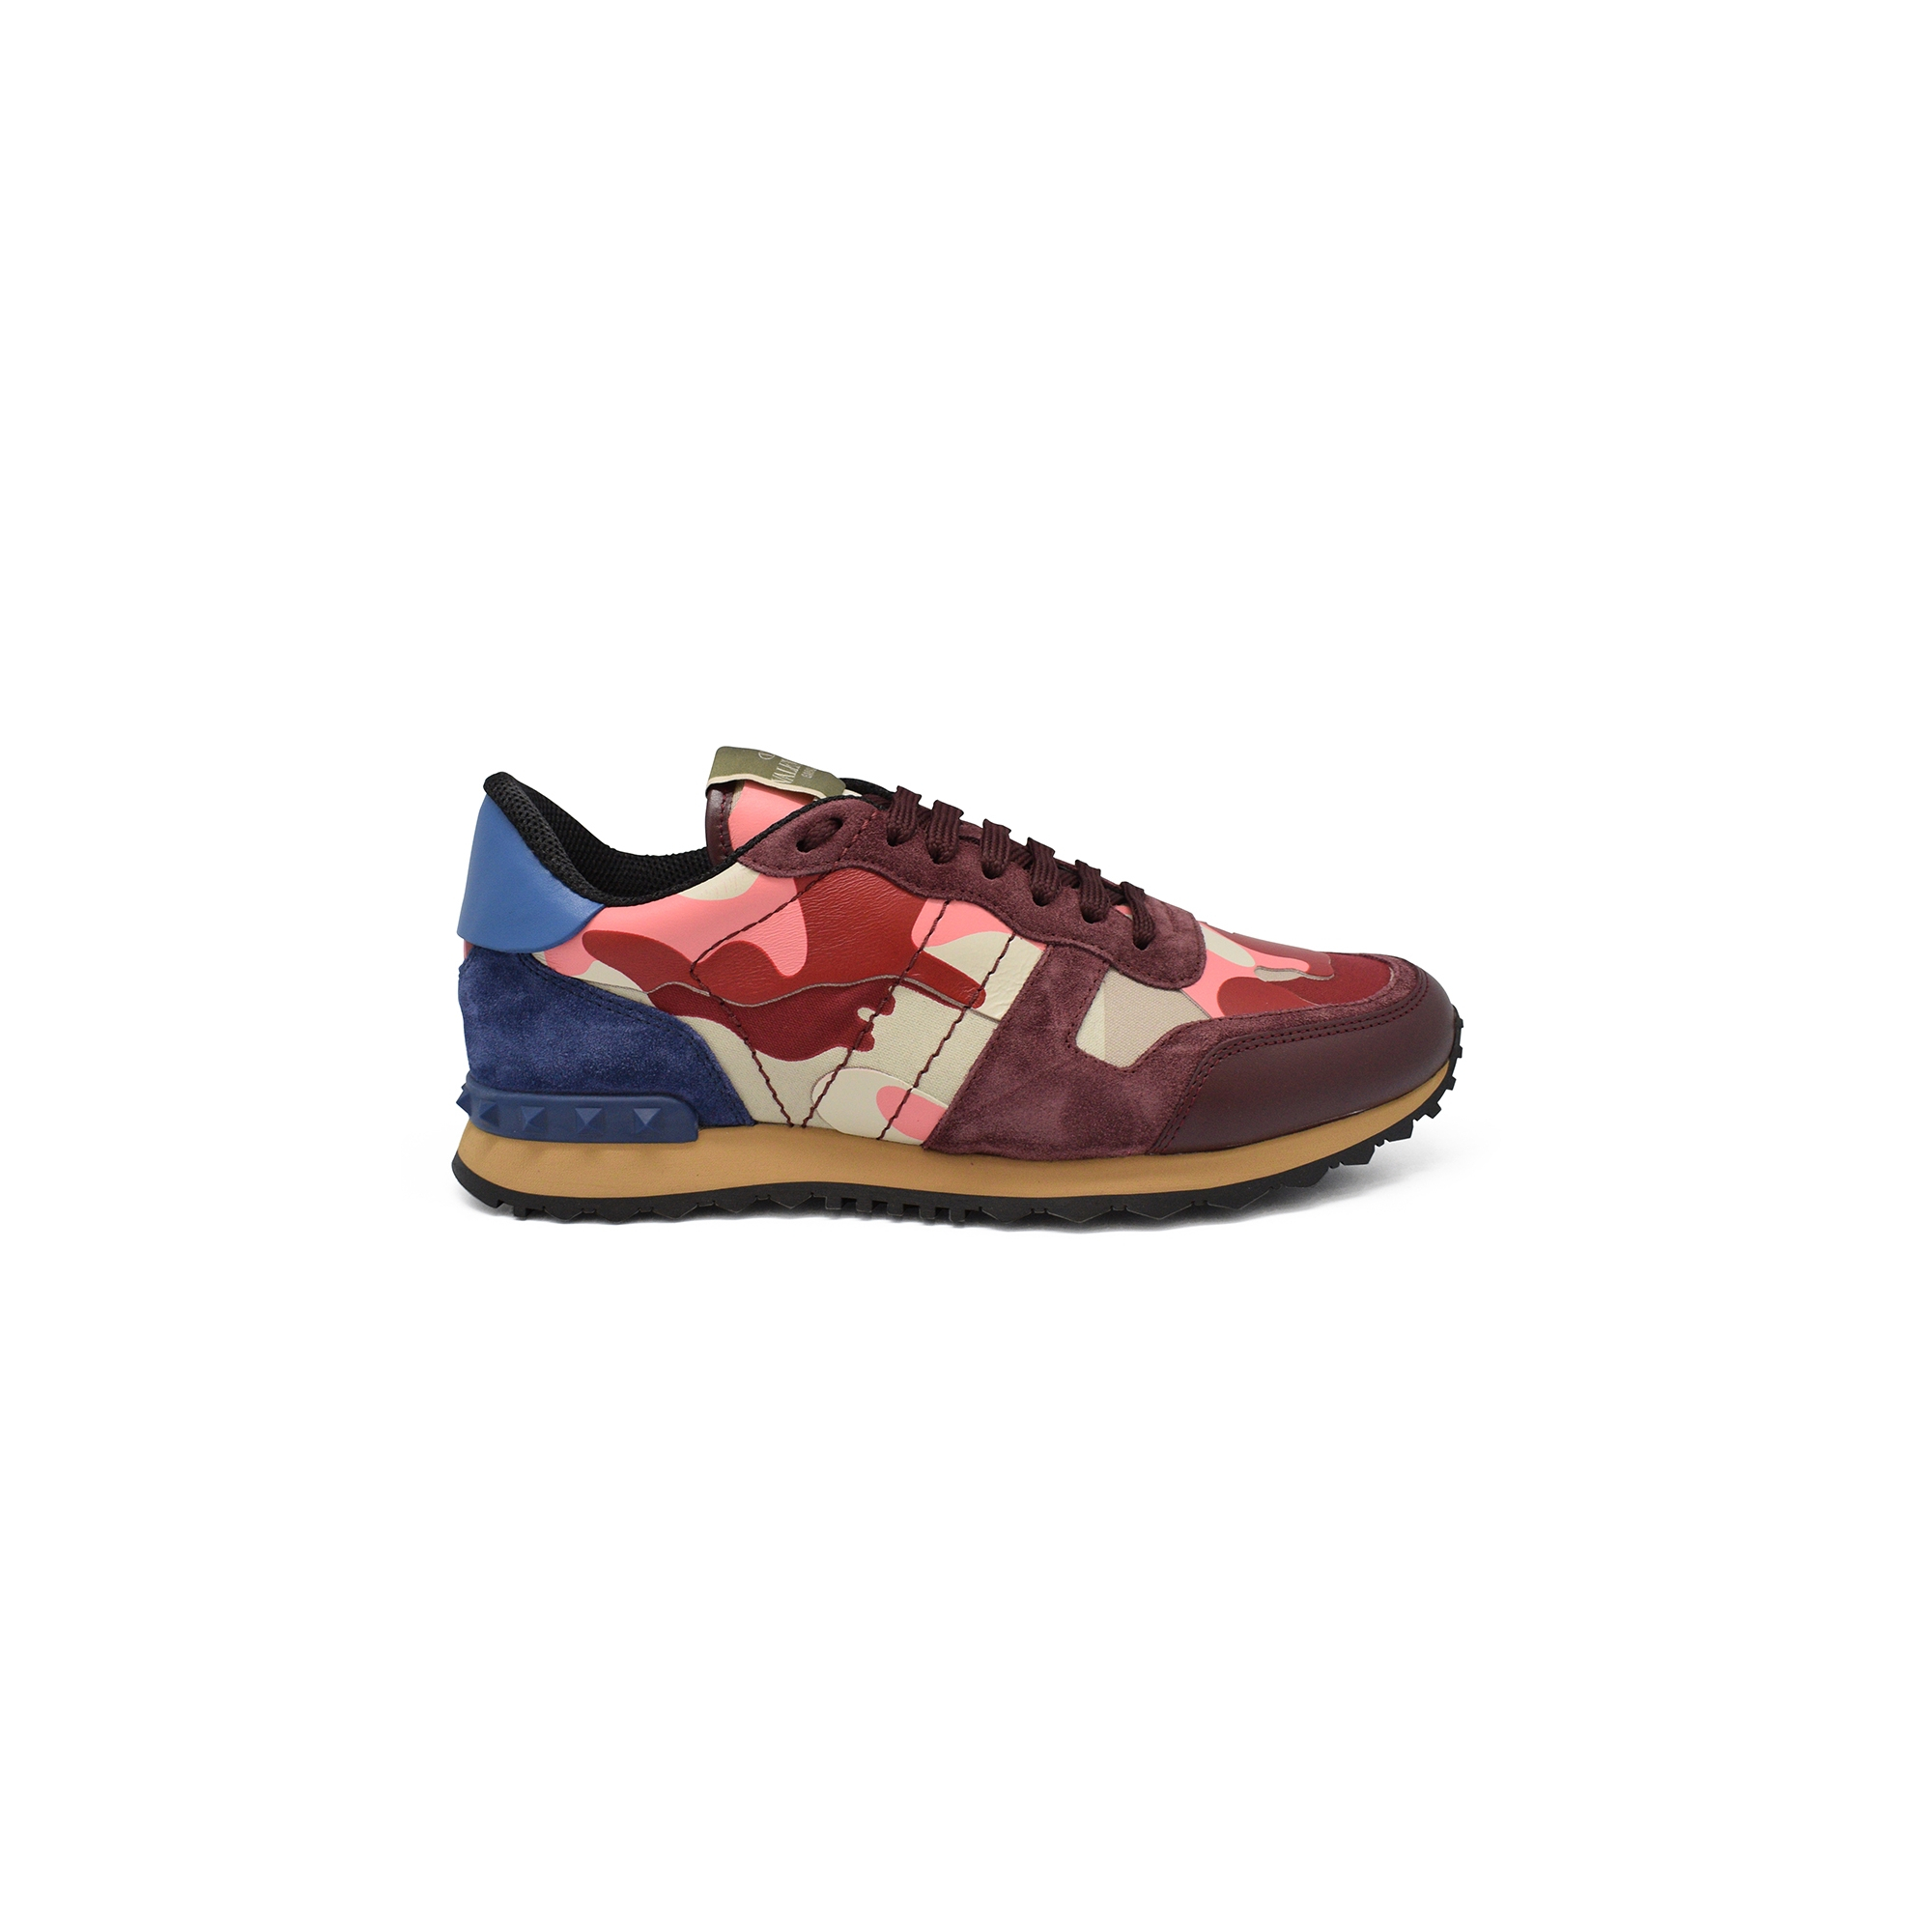 Valentino Rockrunner camouflage sneakers in pink and red fabric and nappa